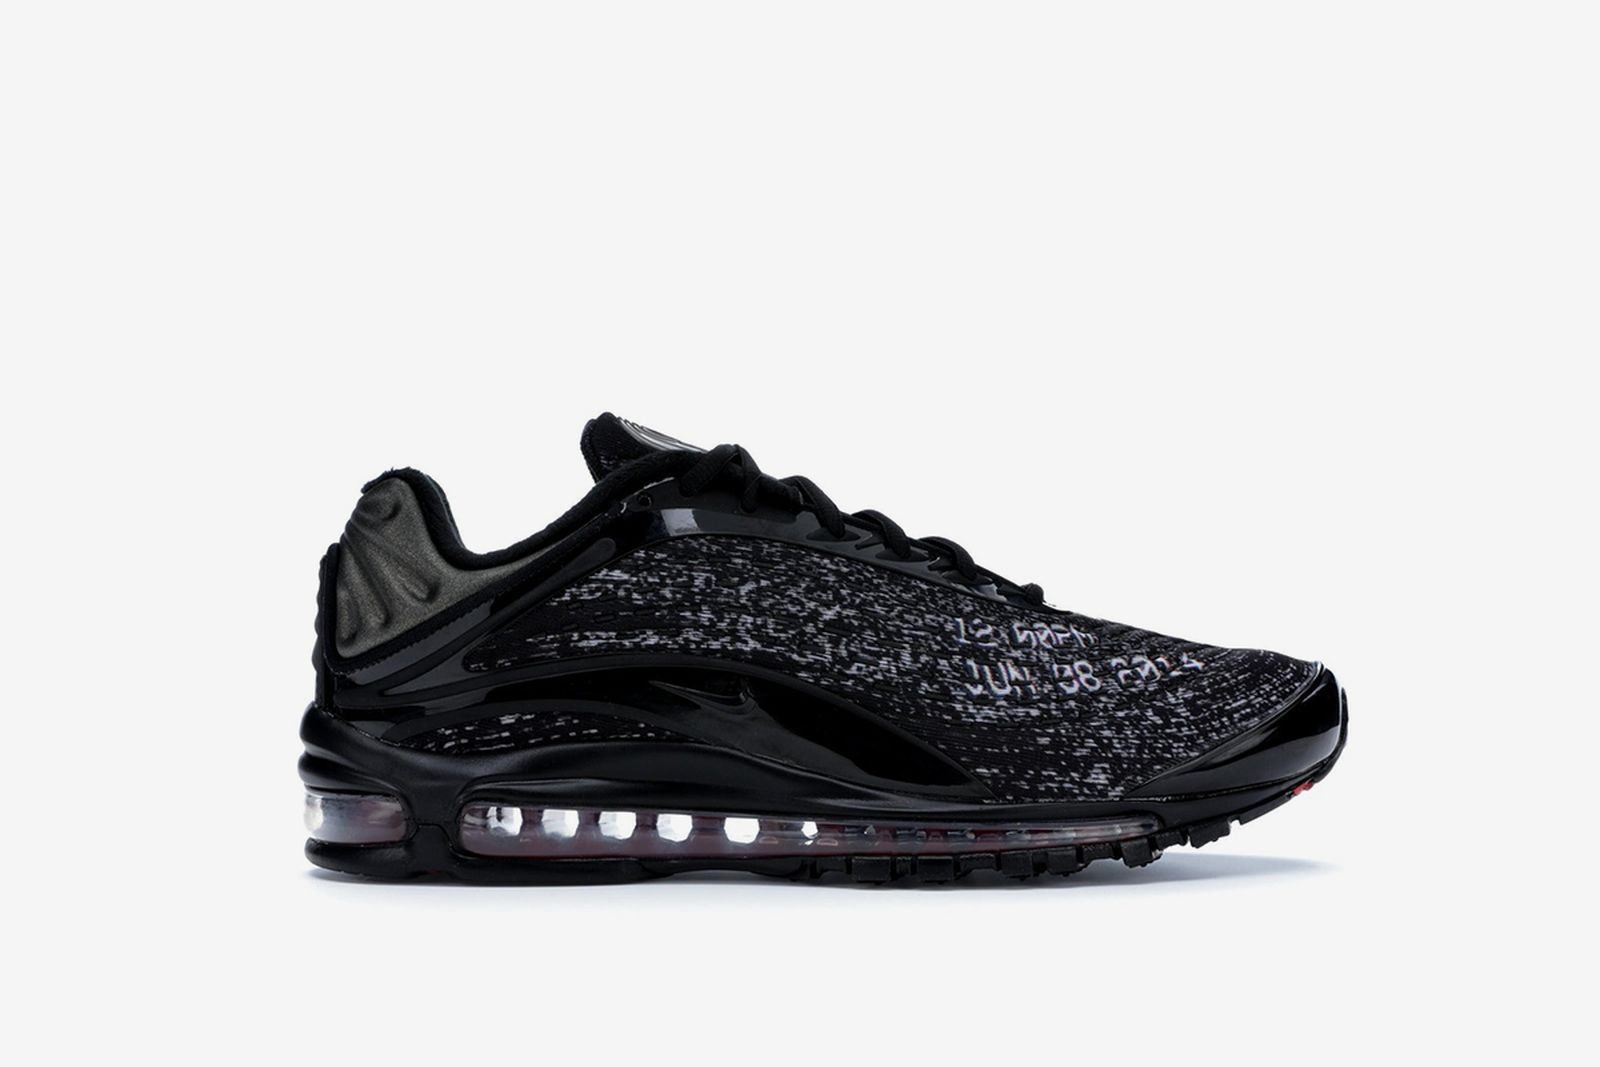 best air max deals resale 000 Air Max 270 Air Max Deluxe OG Nike